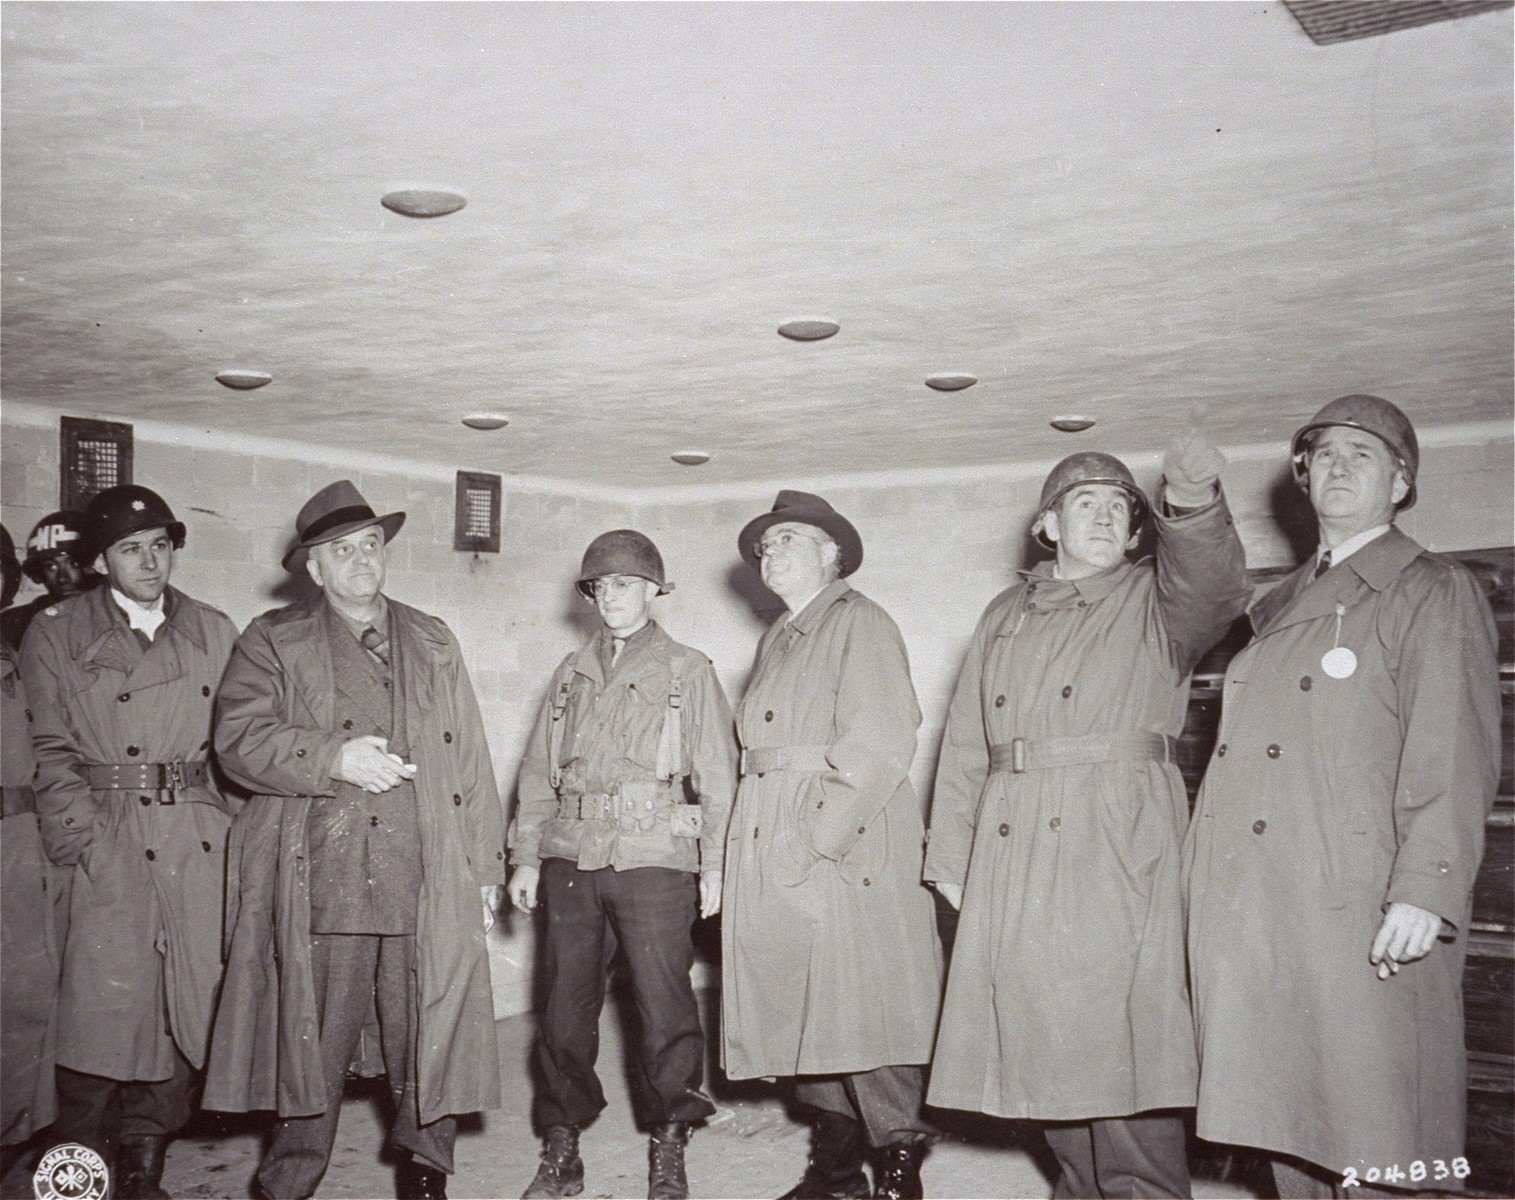 Members of a congressional group investigating German atrocities inspect the gas chamber in Dachau.    In the group are Senator Kenneth S Wherry, Senator. C. Wayland Brooks, Representative John M. Vorys, and Senator James P. Richards.